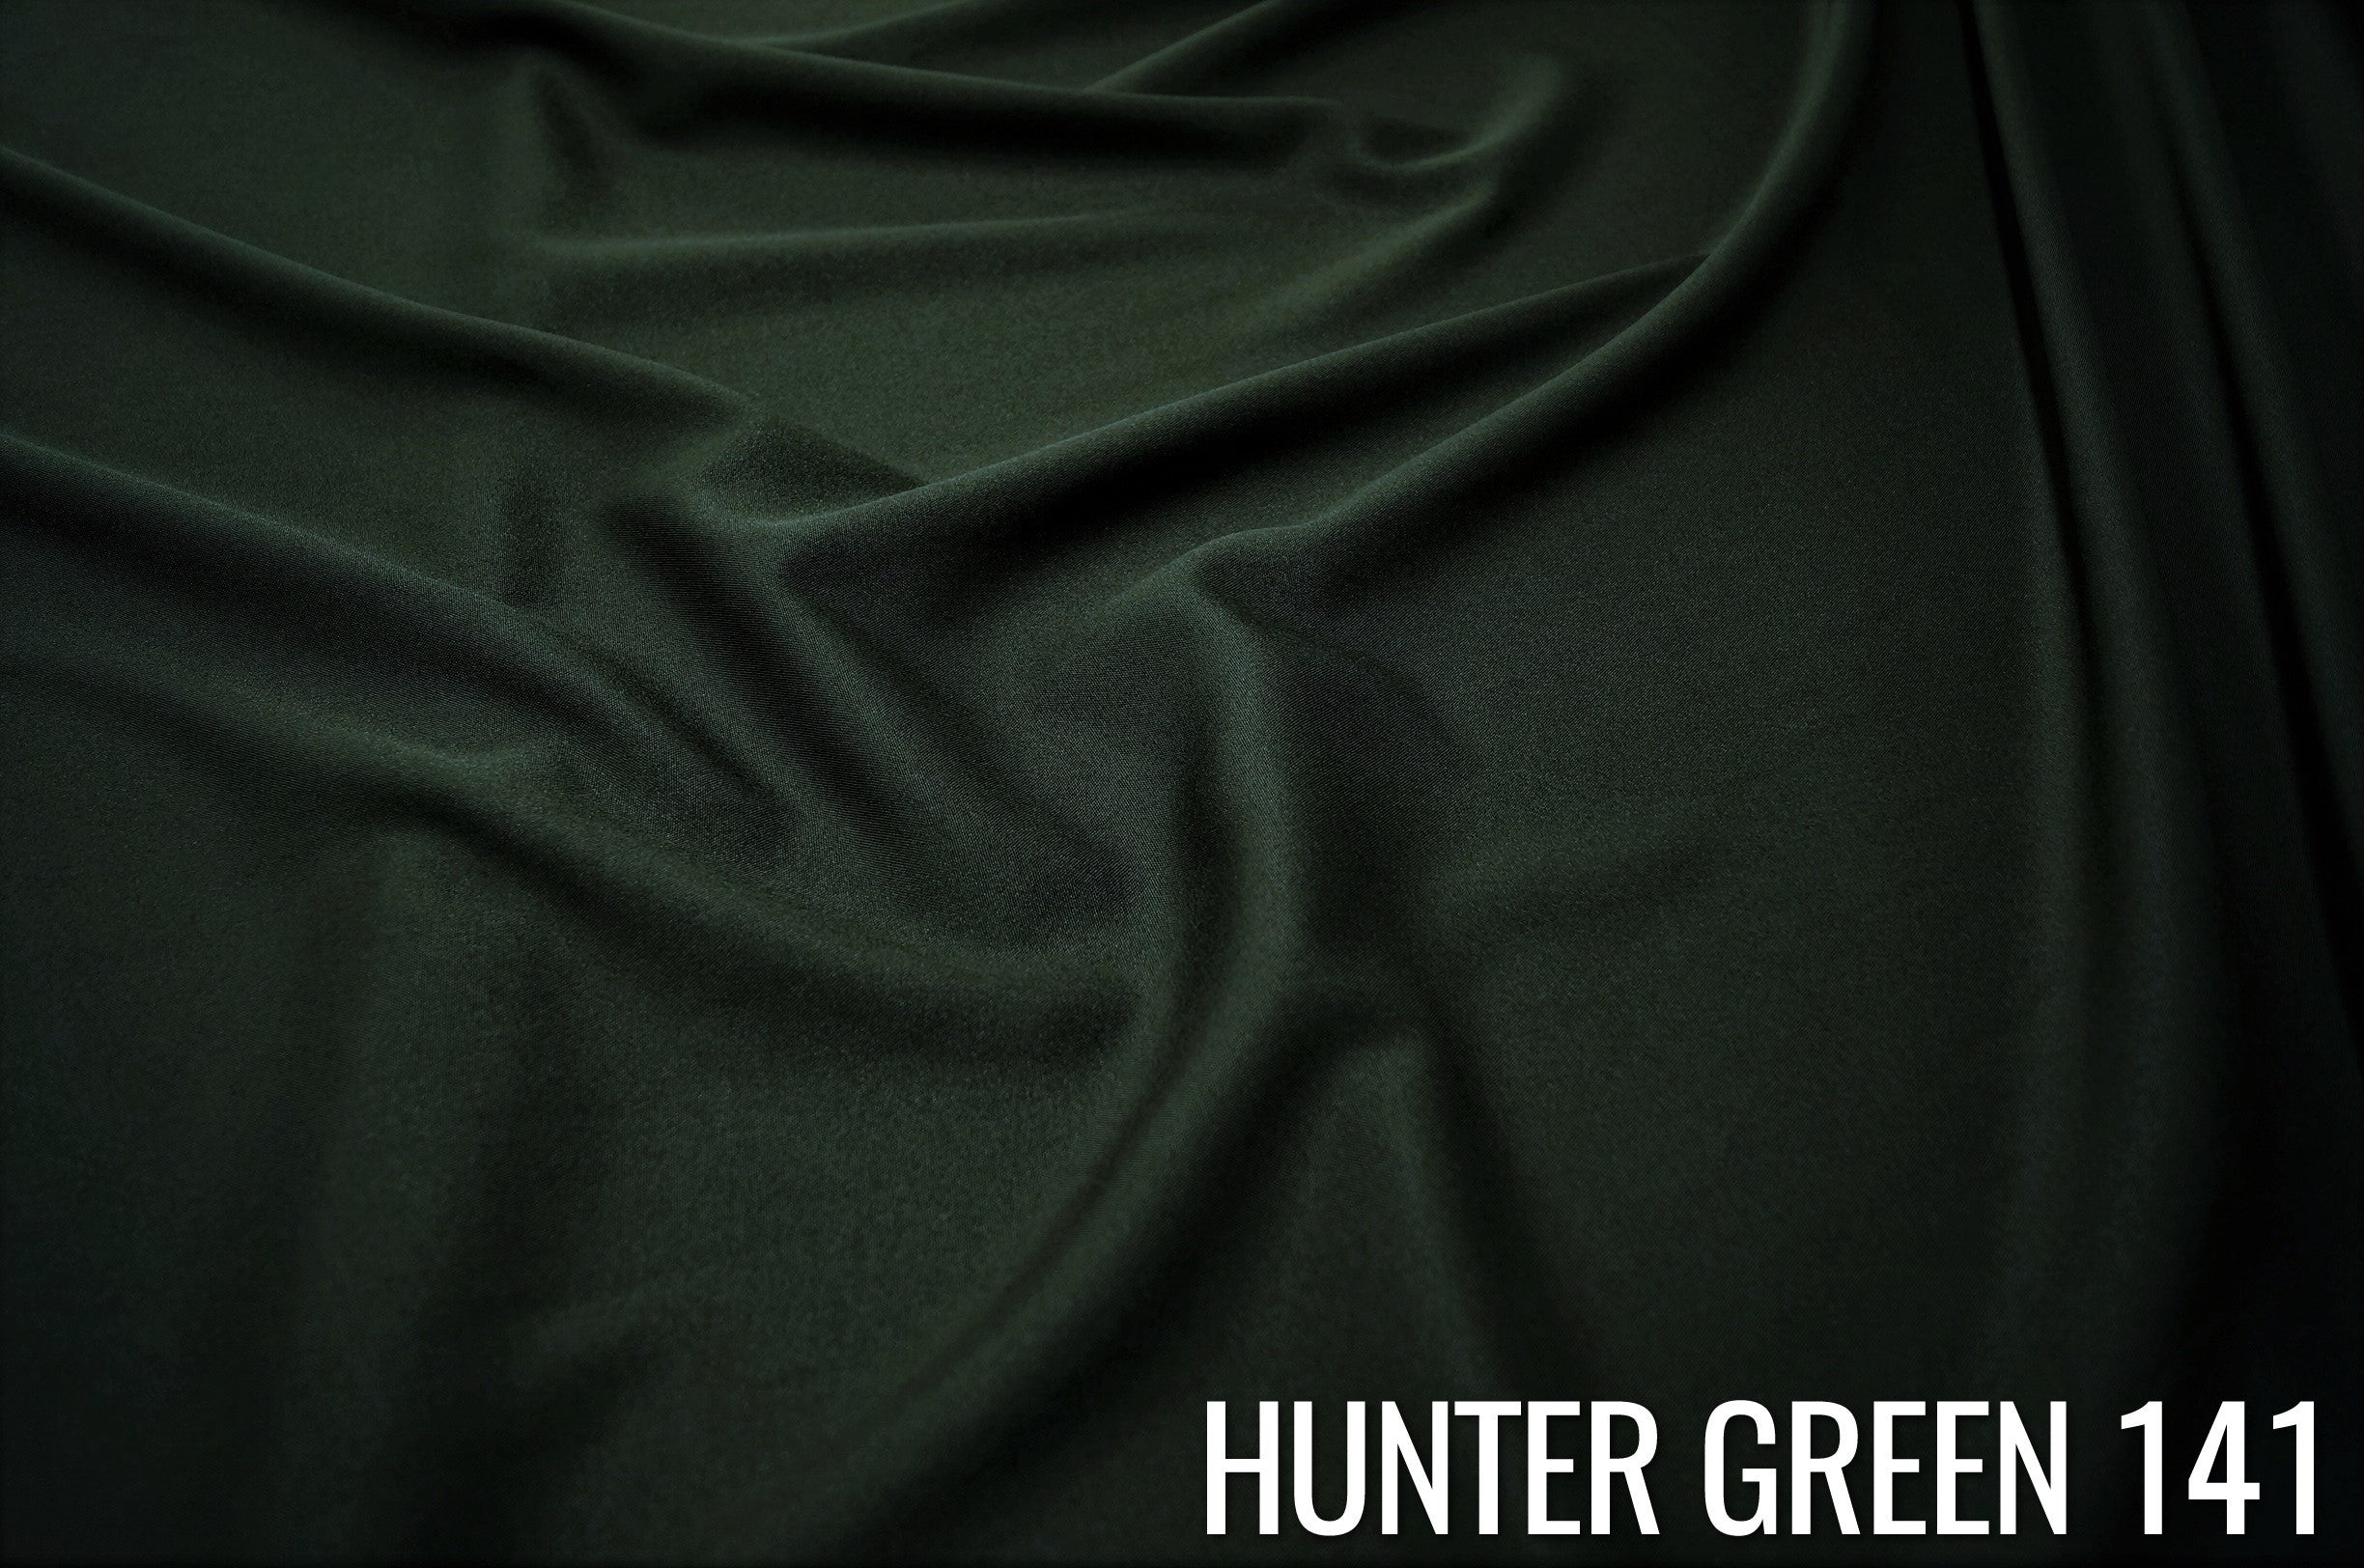 HUNTER GREEN 141